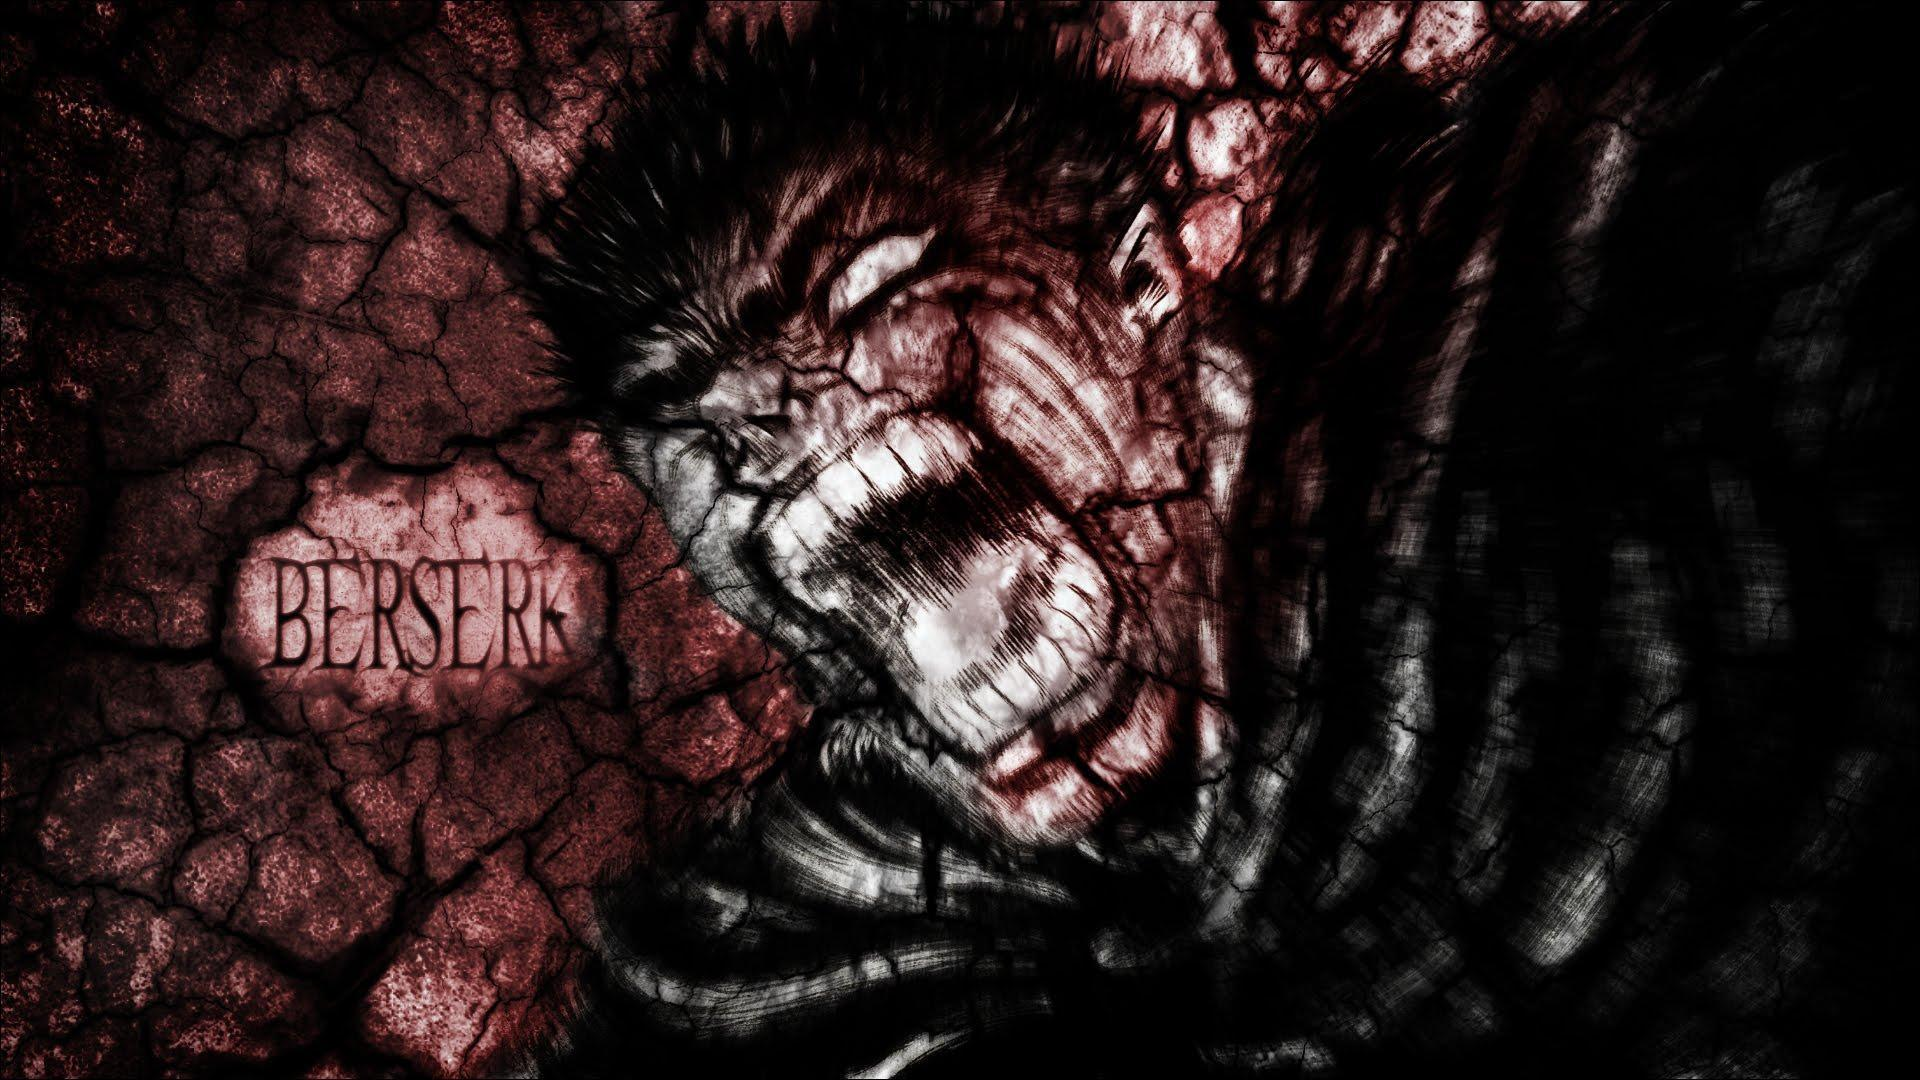 berserk wallpaper 4k - photo #21